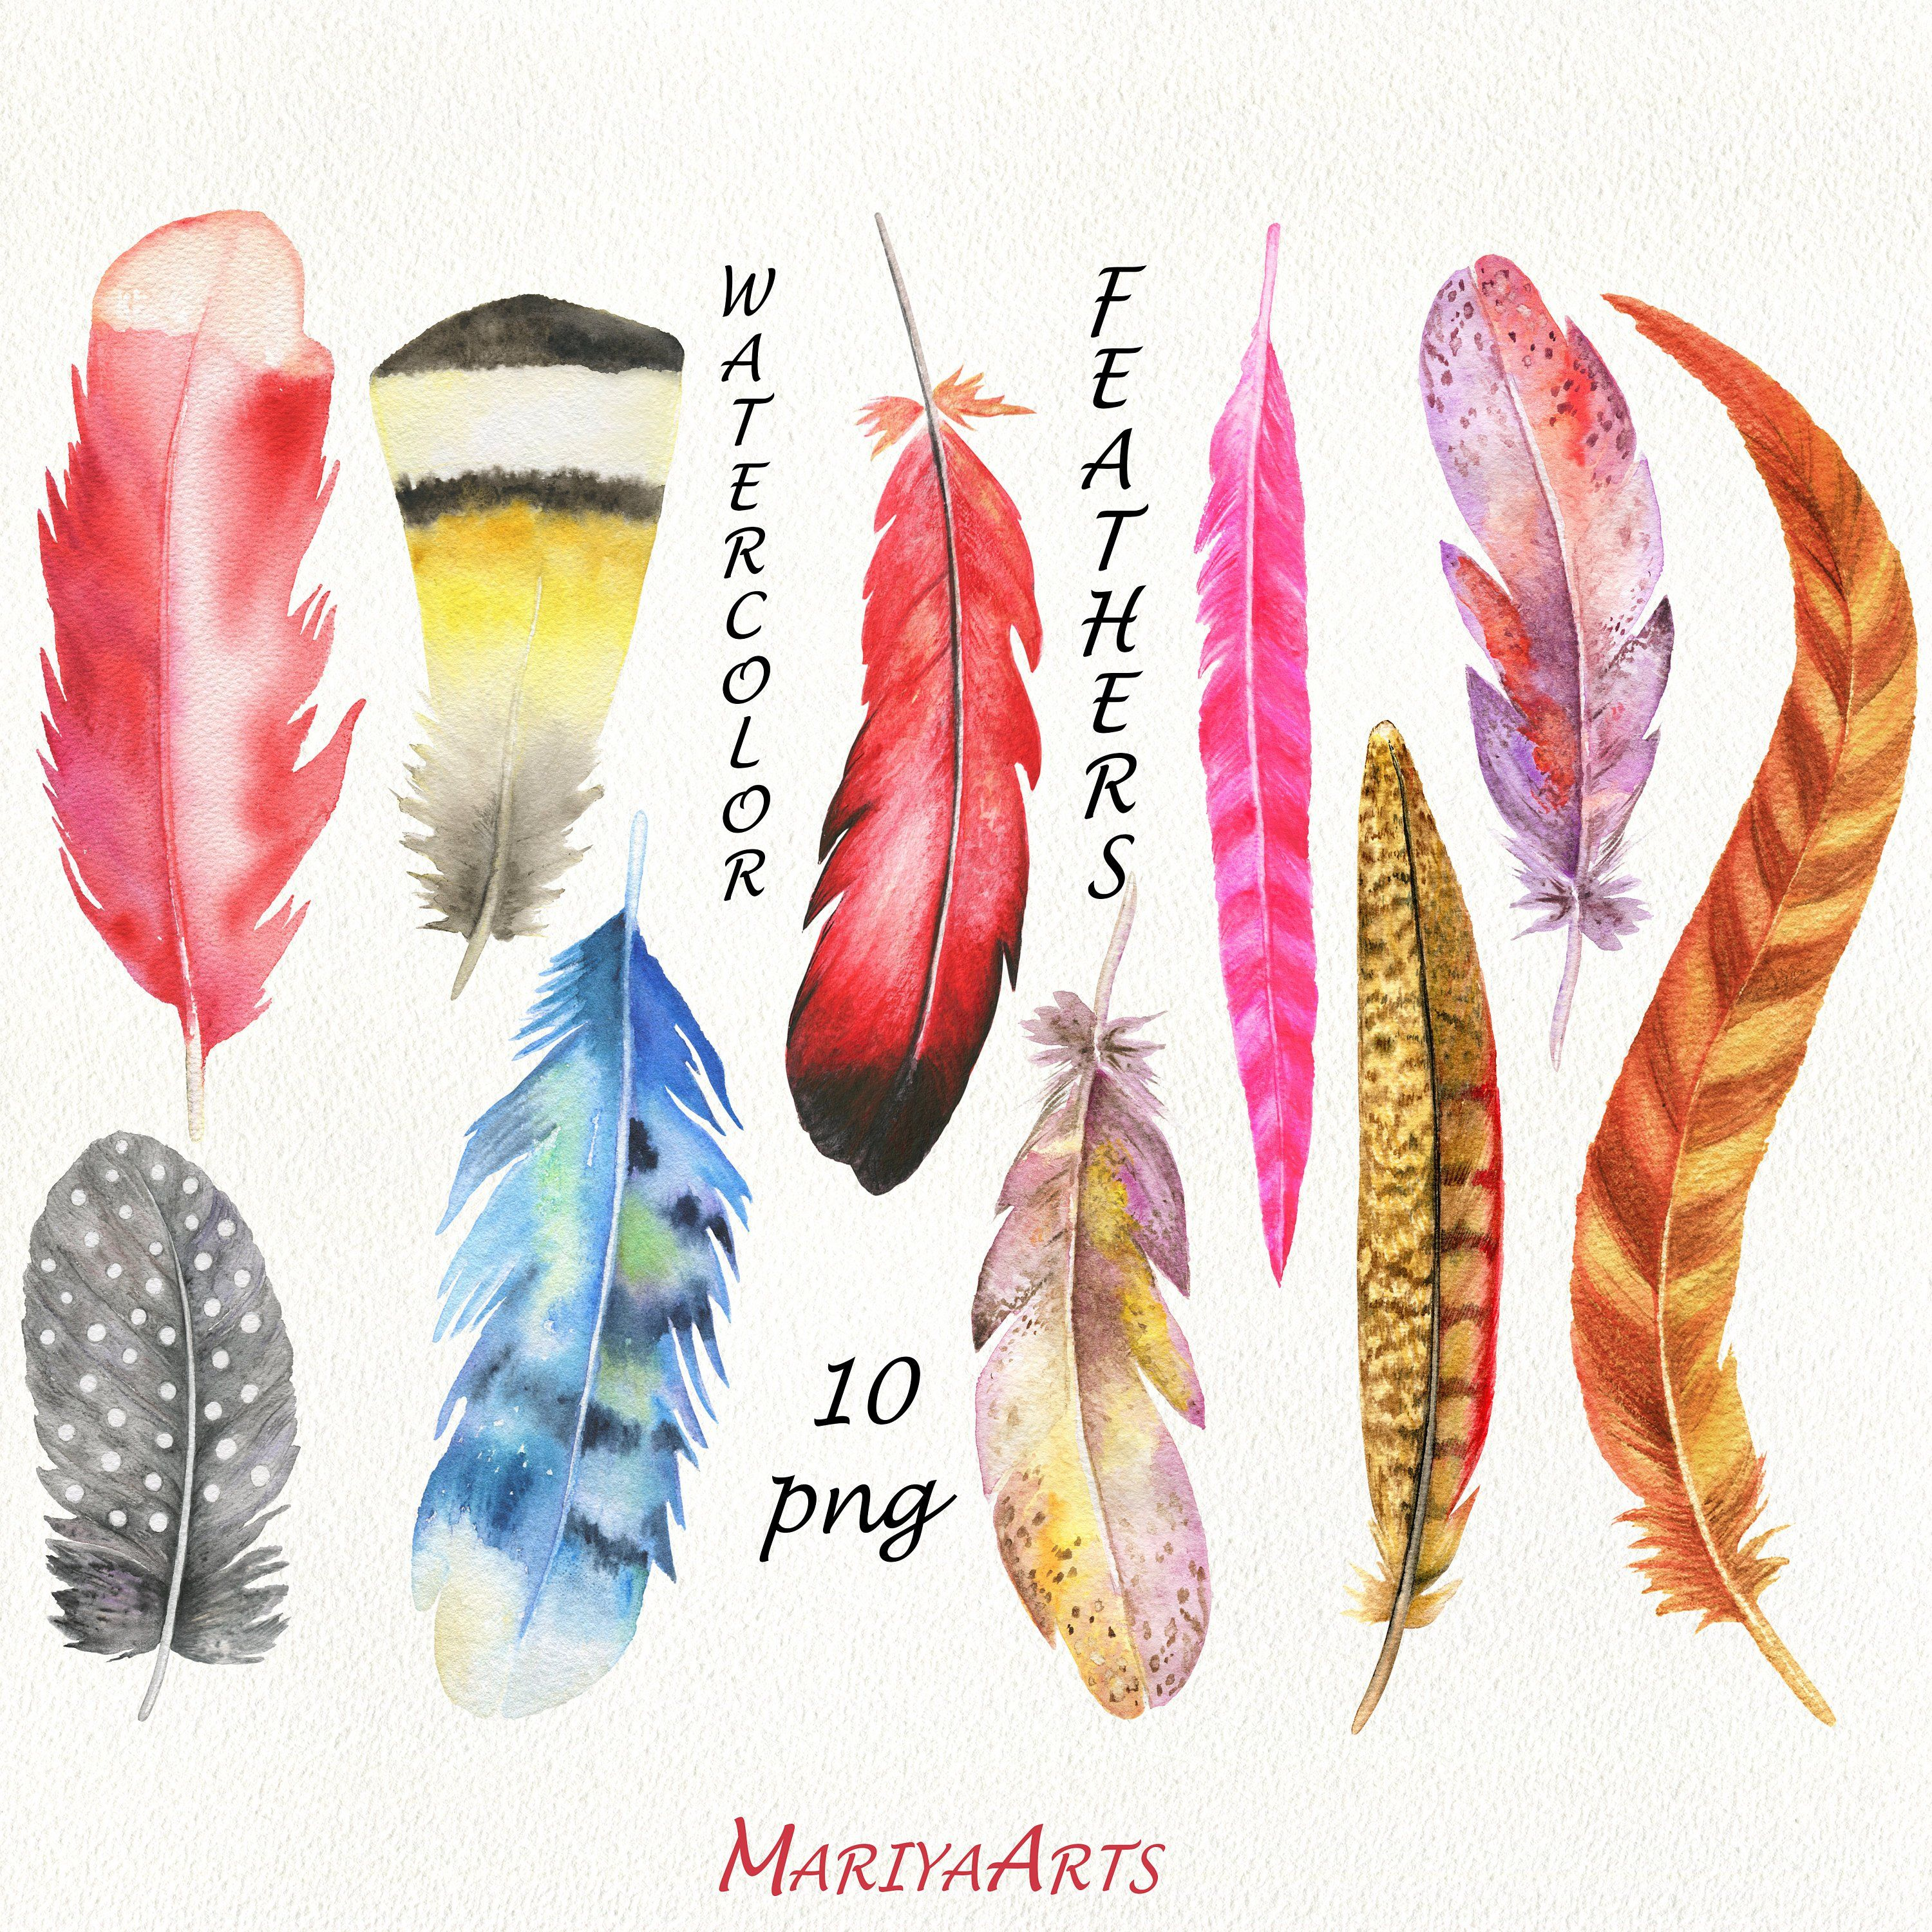 Feather clipart rustic. Watercolor feathers clip art